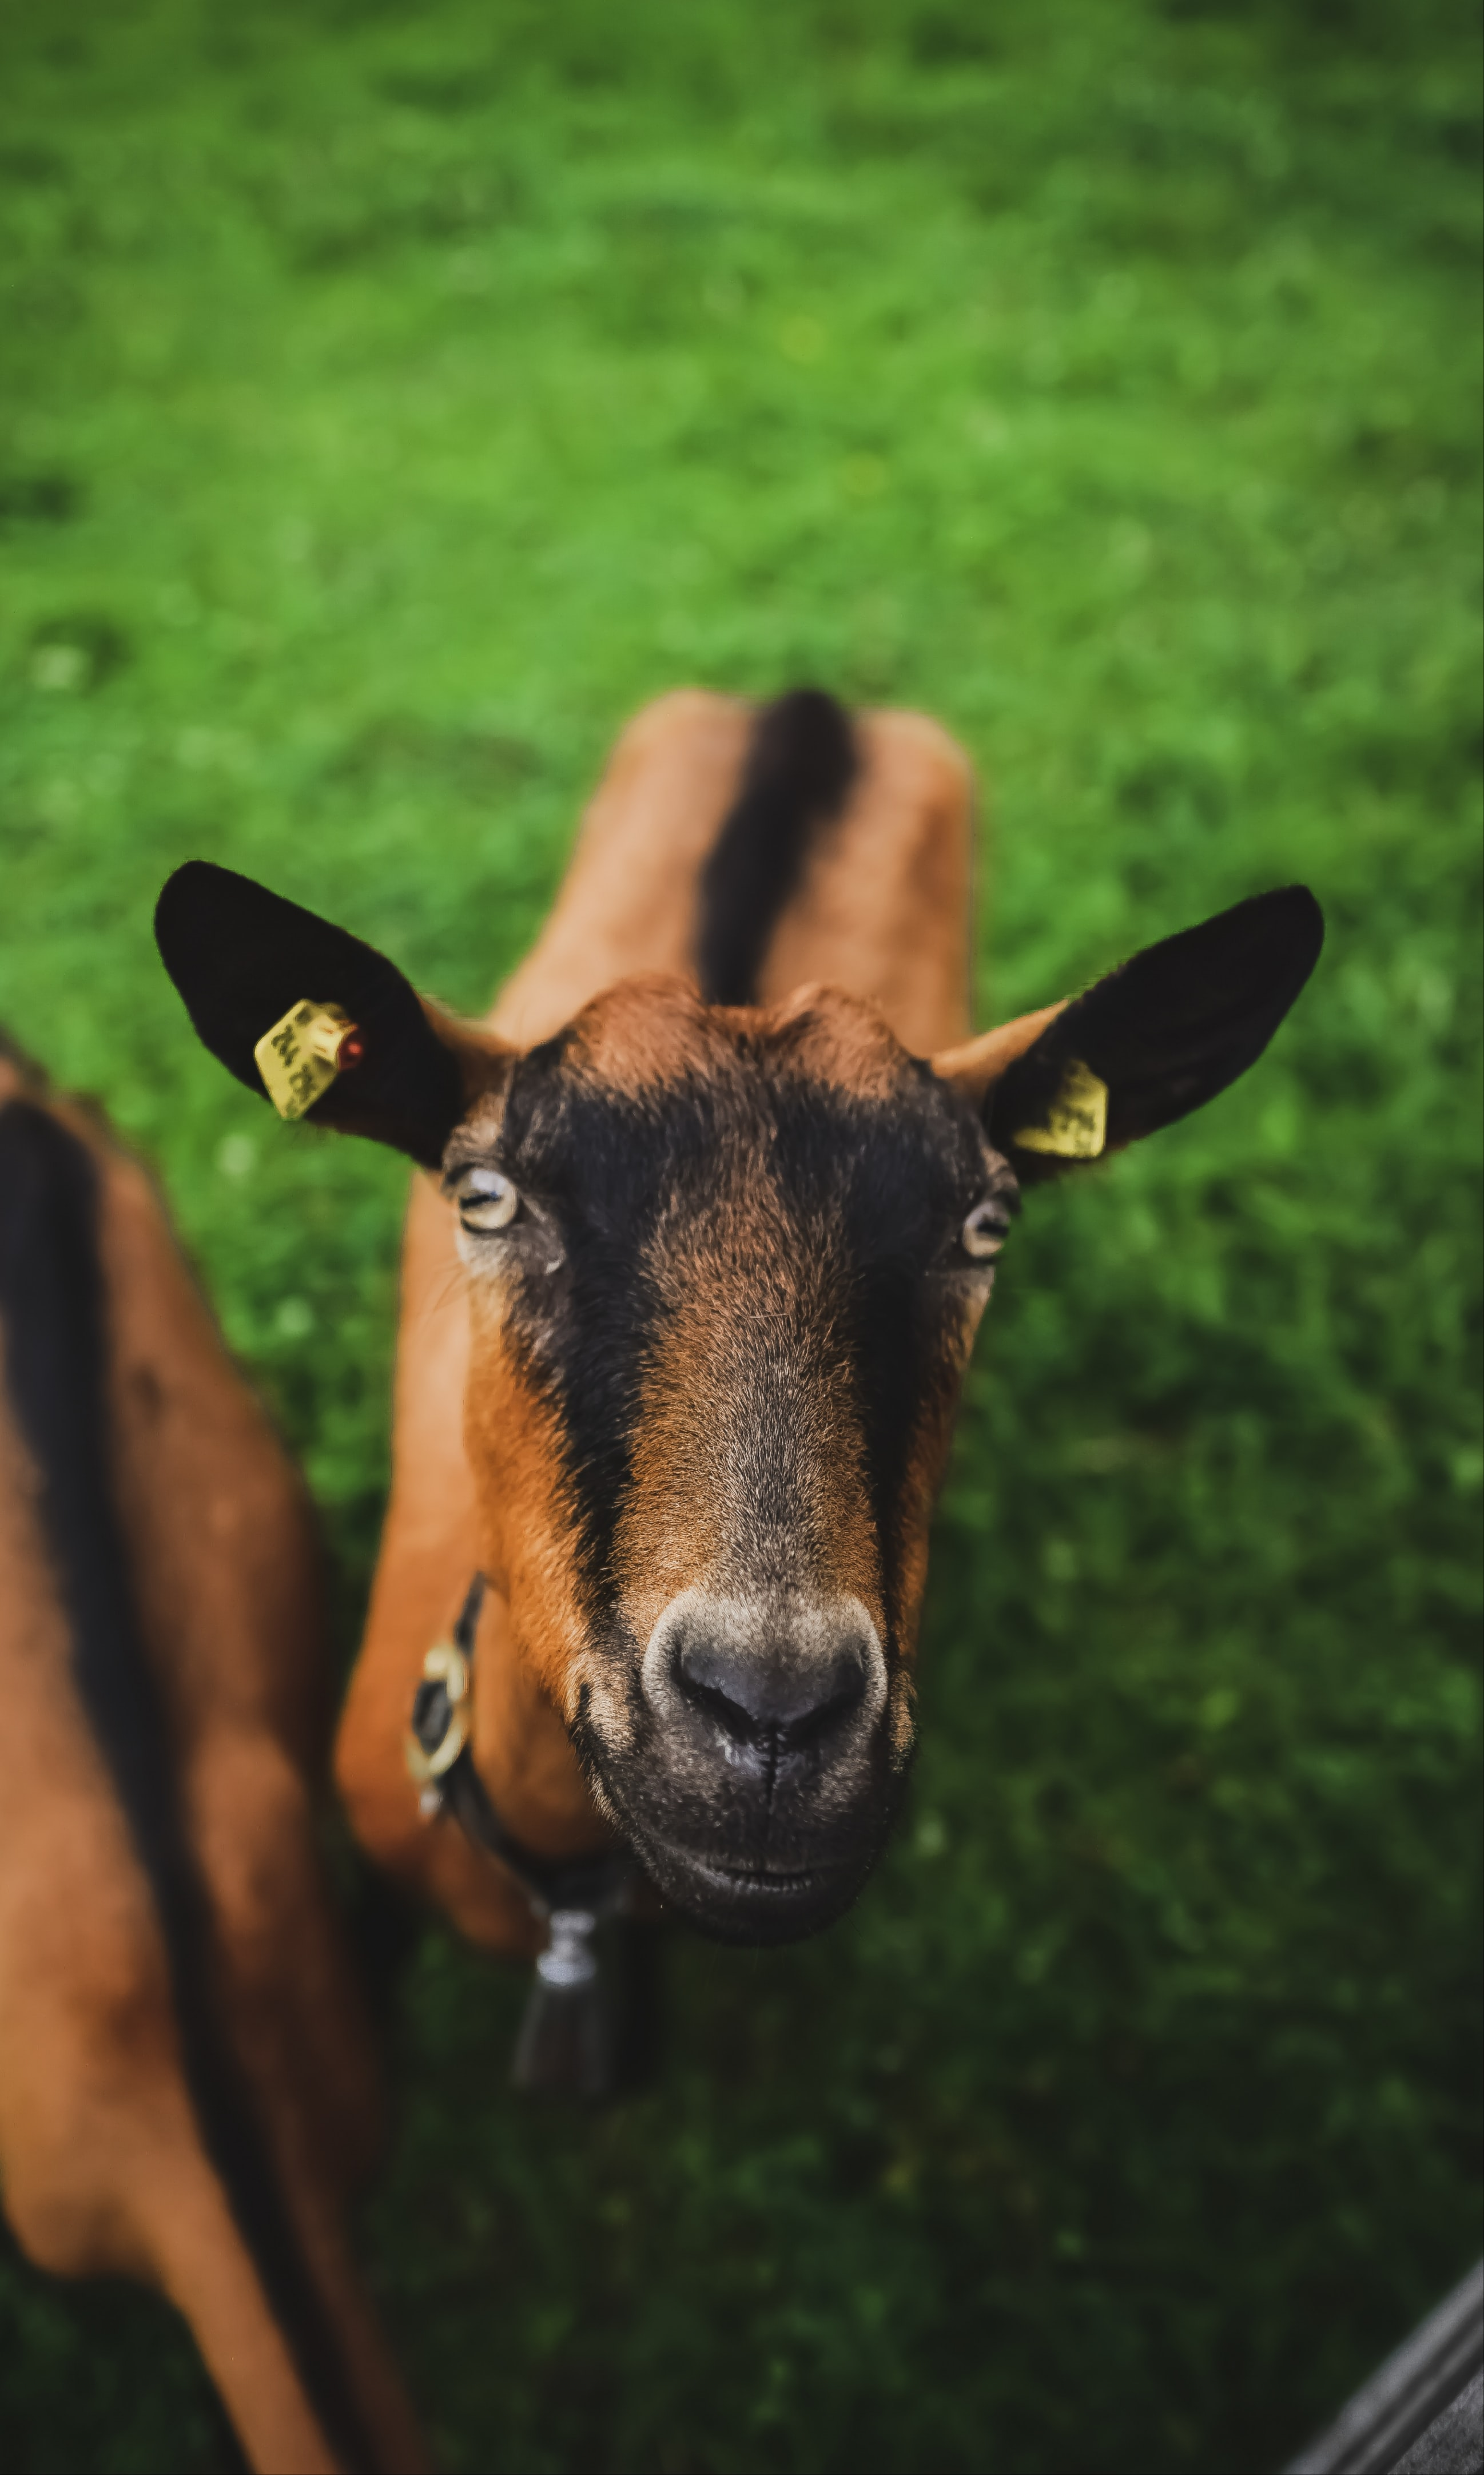 brown and black goat on green grass